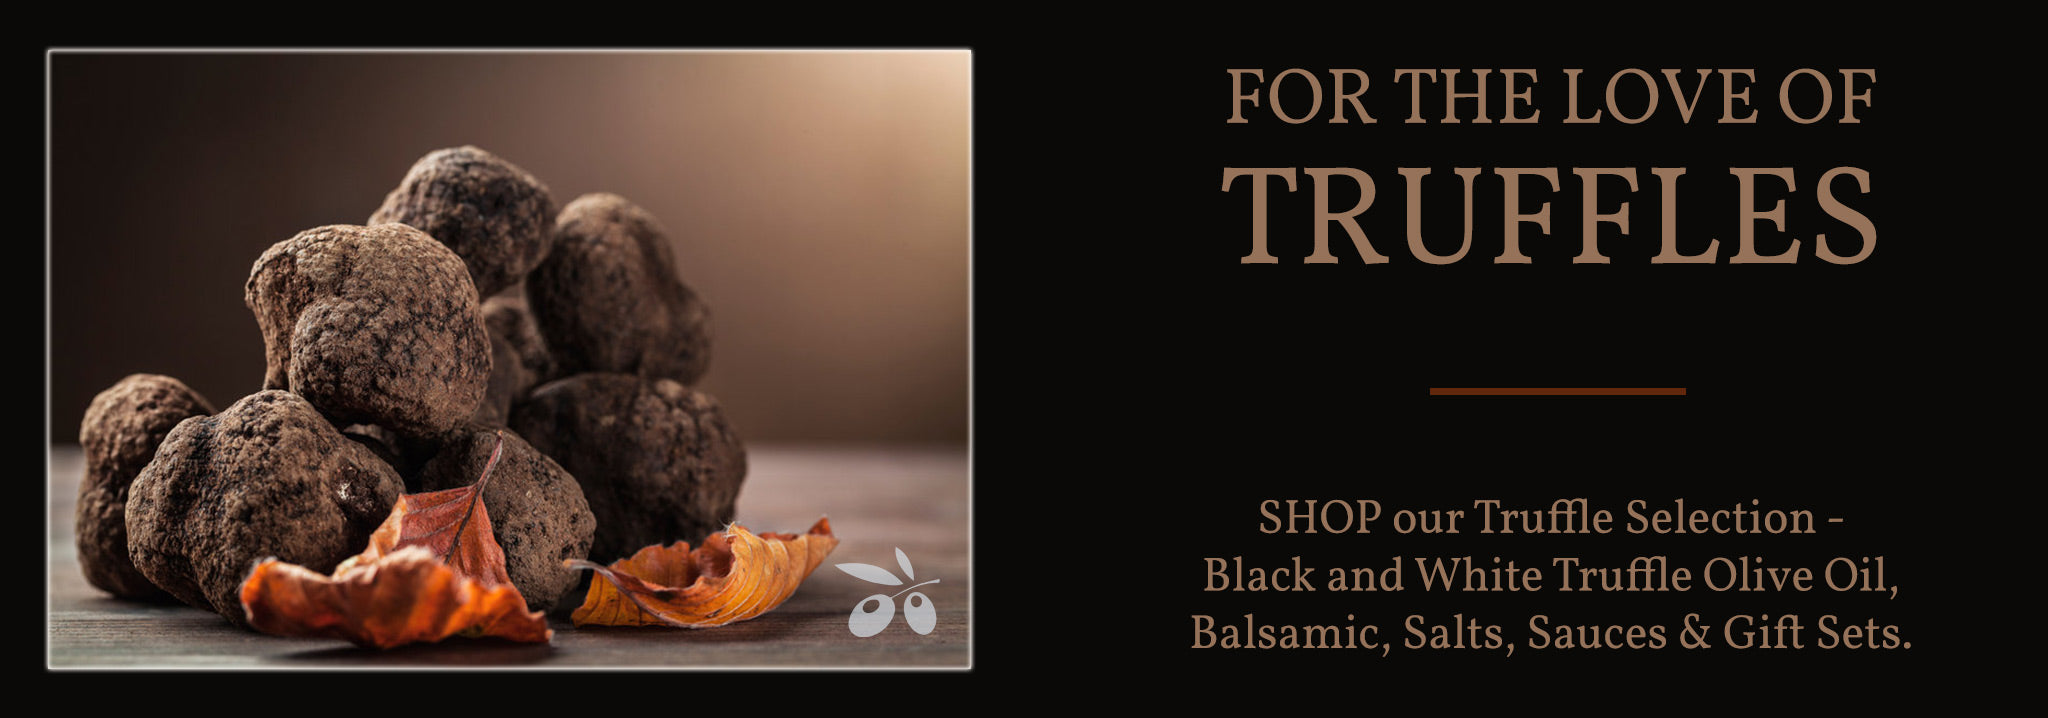 black and white truffle olive oil salts balsamic sauces mayo georgetown olive oil co.